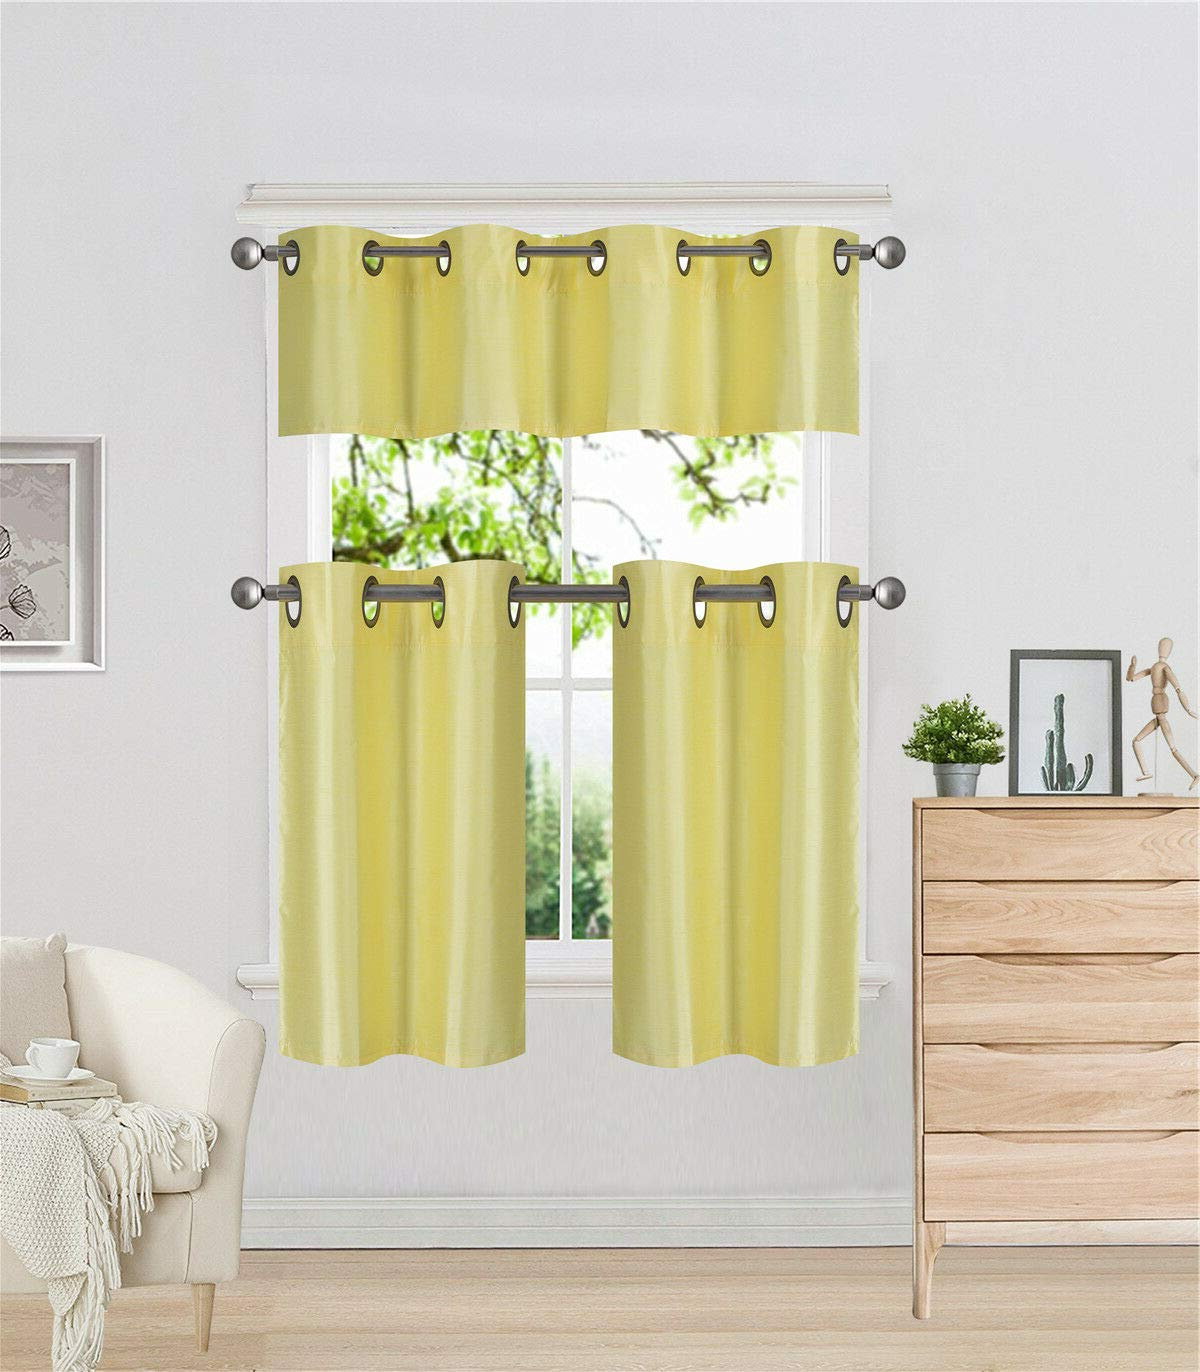 Faux Silk 3 Piece Kitchen Curtain Sets Pertaining To Fashionable Diamondhome 3 Piece Faux Silk Grommet Lined Thermal Blackout Kitchen Window  Curtain Set 2 Tiers & 1 Valance, K7 (Yellow) (View 8 of 20)